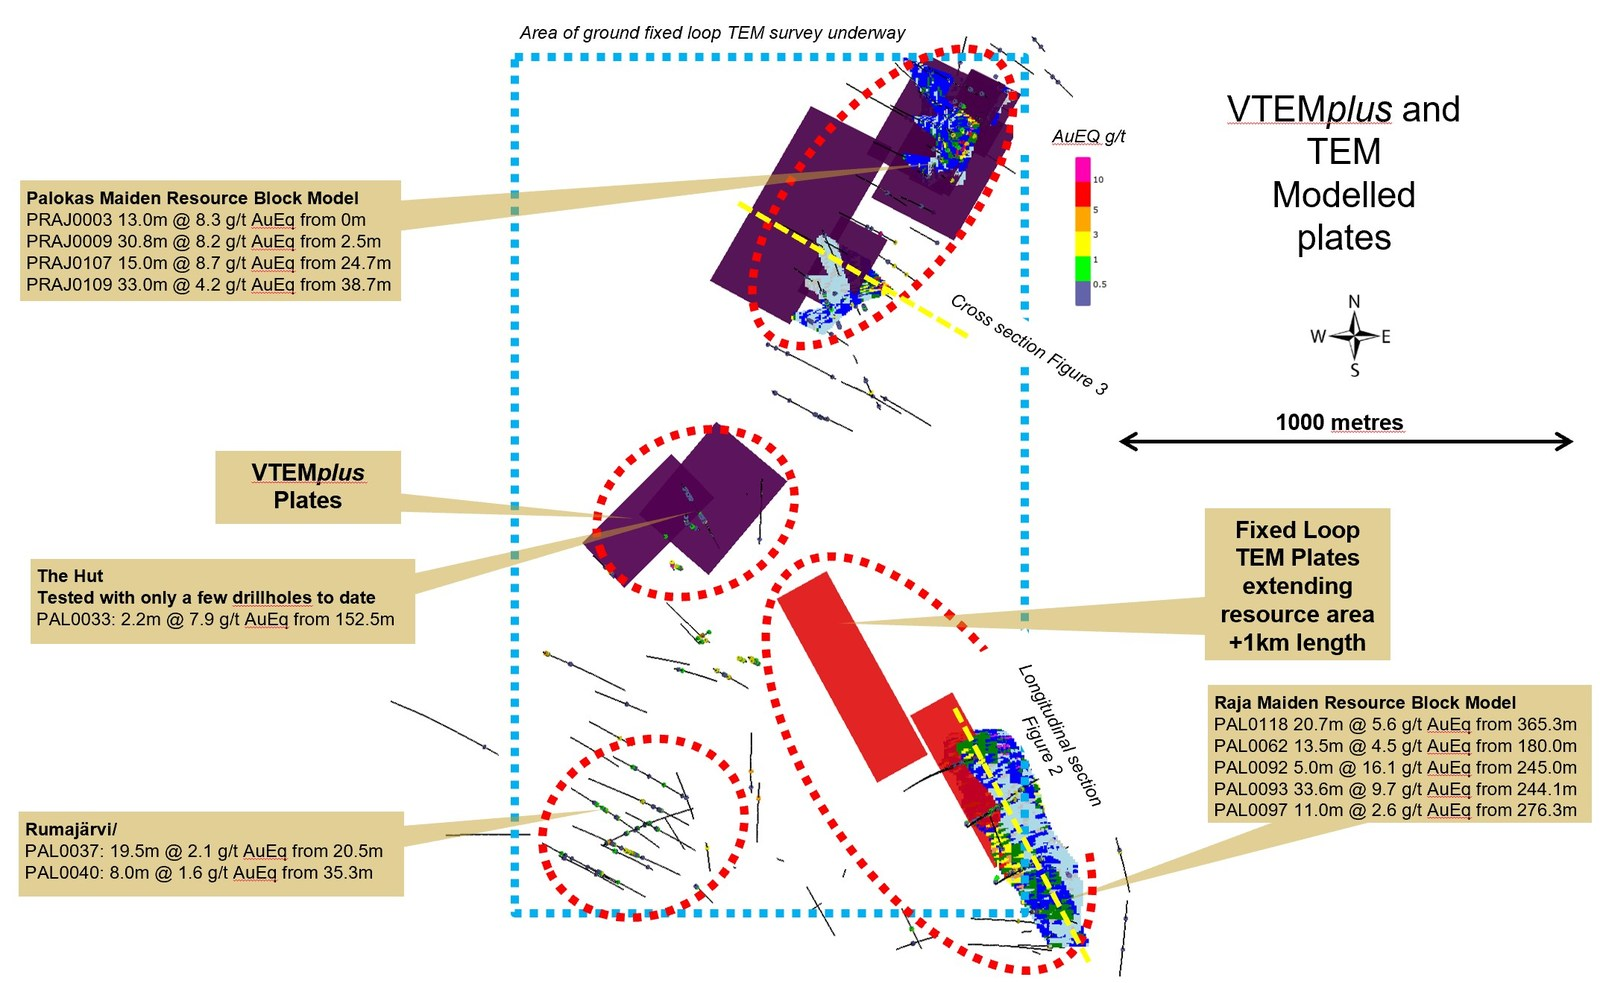 Figure 1: Plan view of resource block models at Raja and Palokas showing resource area covers <20% of 4 kilometres mineralized trend from Palokas to Raja. Electromagnetic fixed loop TEM and VTEMplus conductive plates from geophysical surveys at least doubles the potential mineralization footprint at Raja and Palokas.